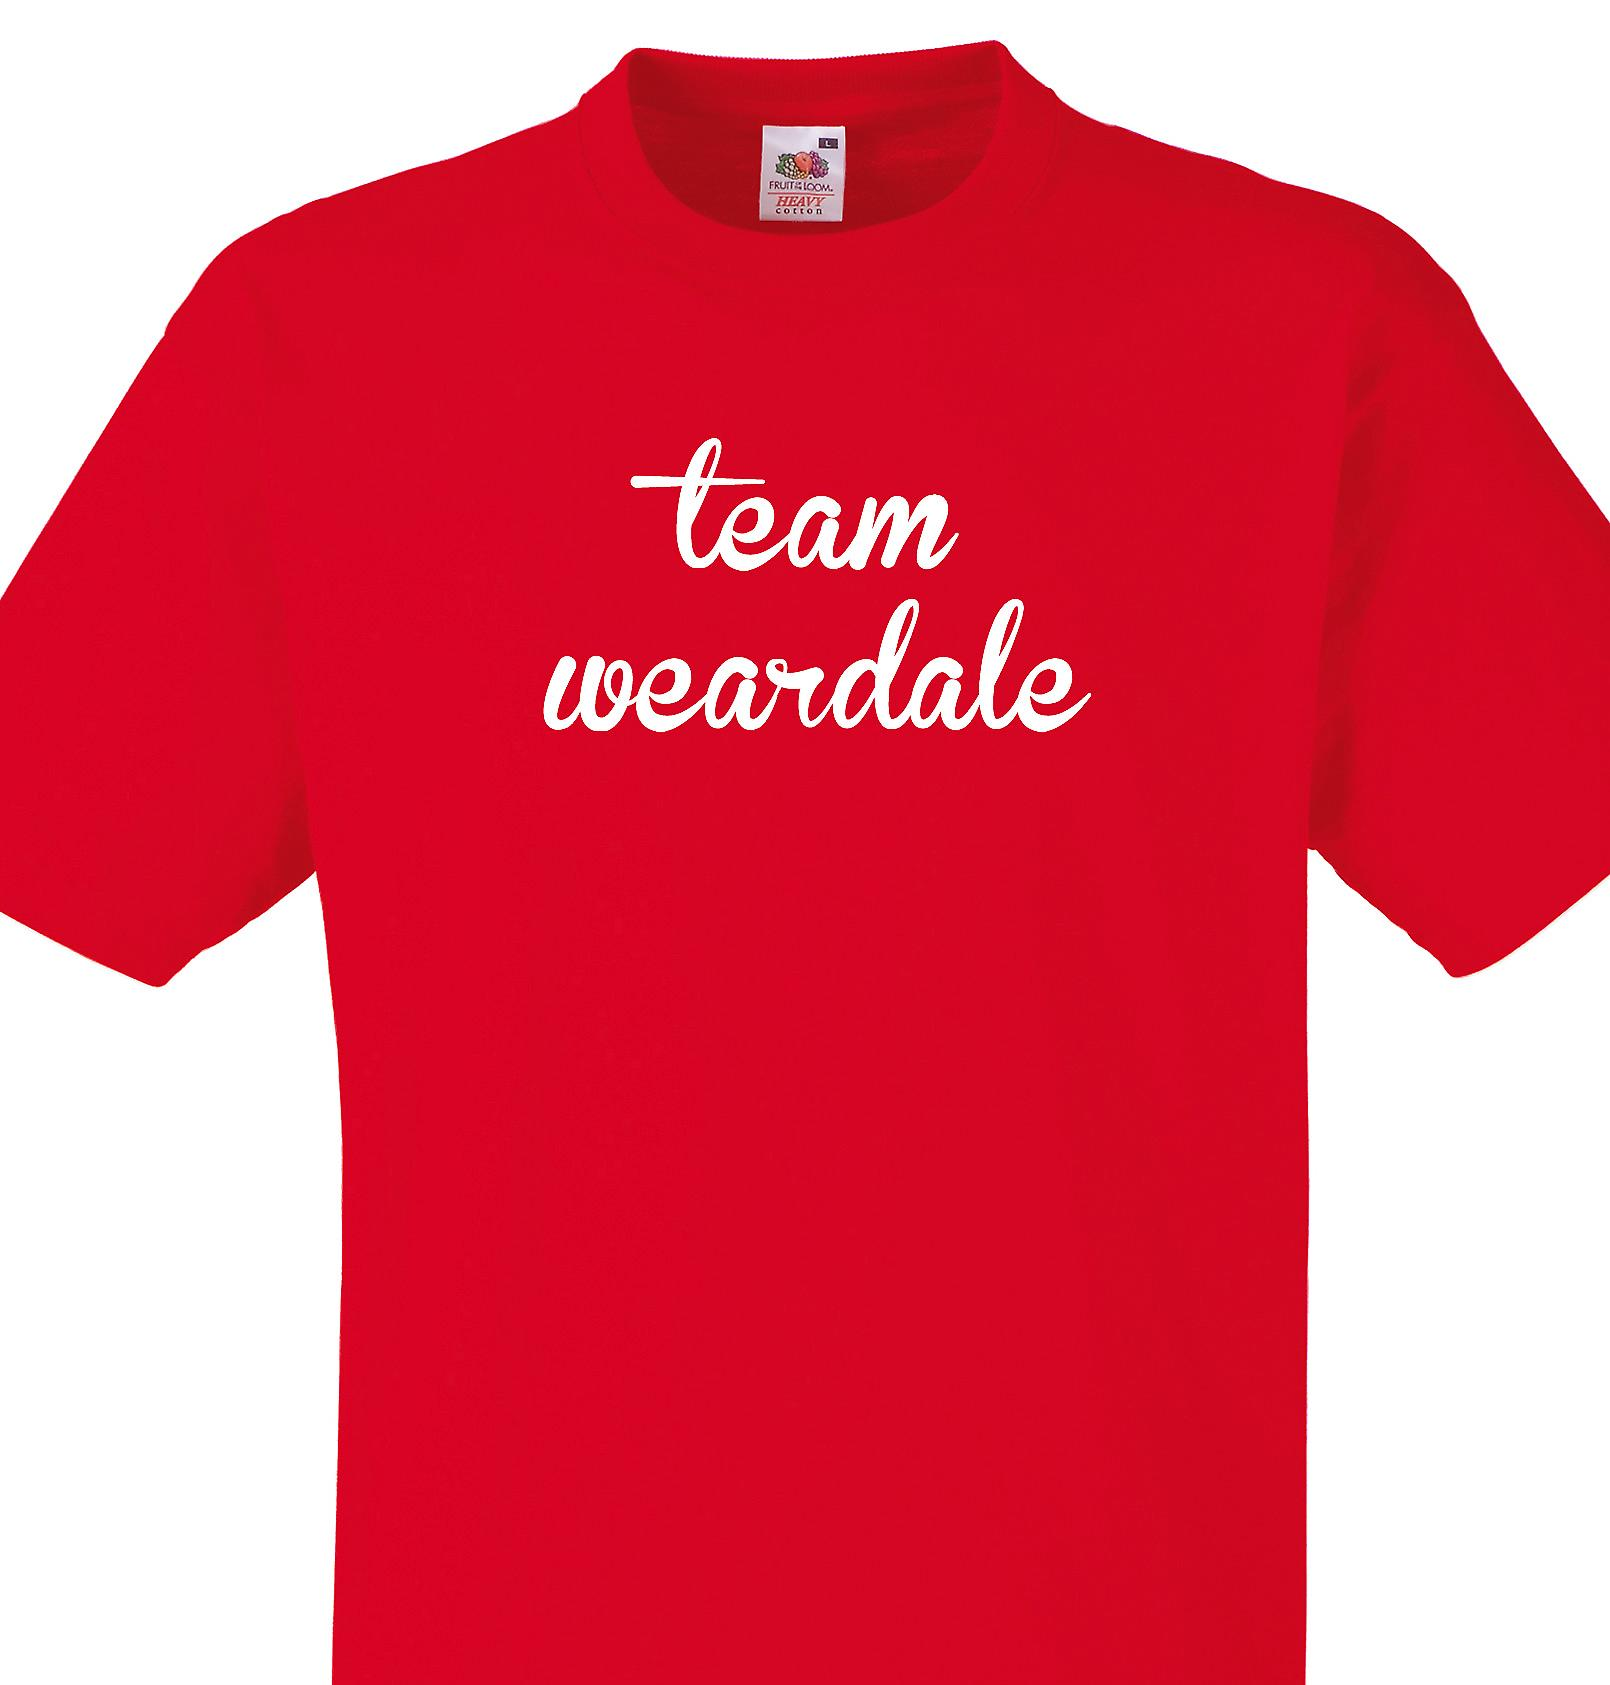 Team Weardale Red T shirt